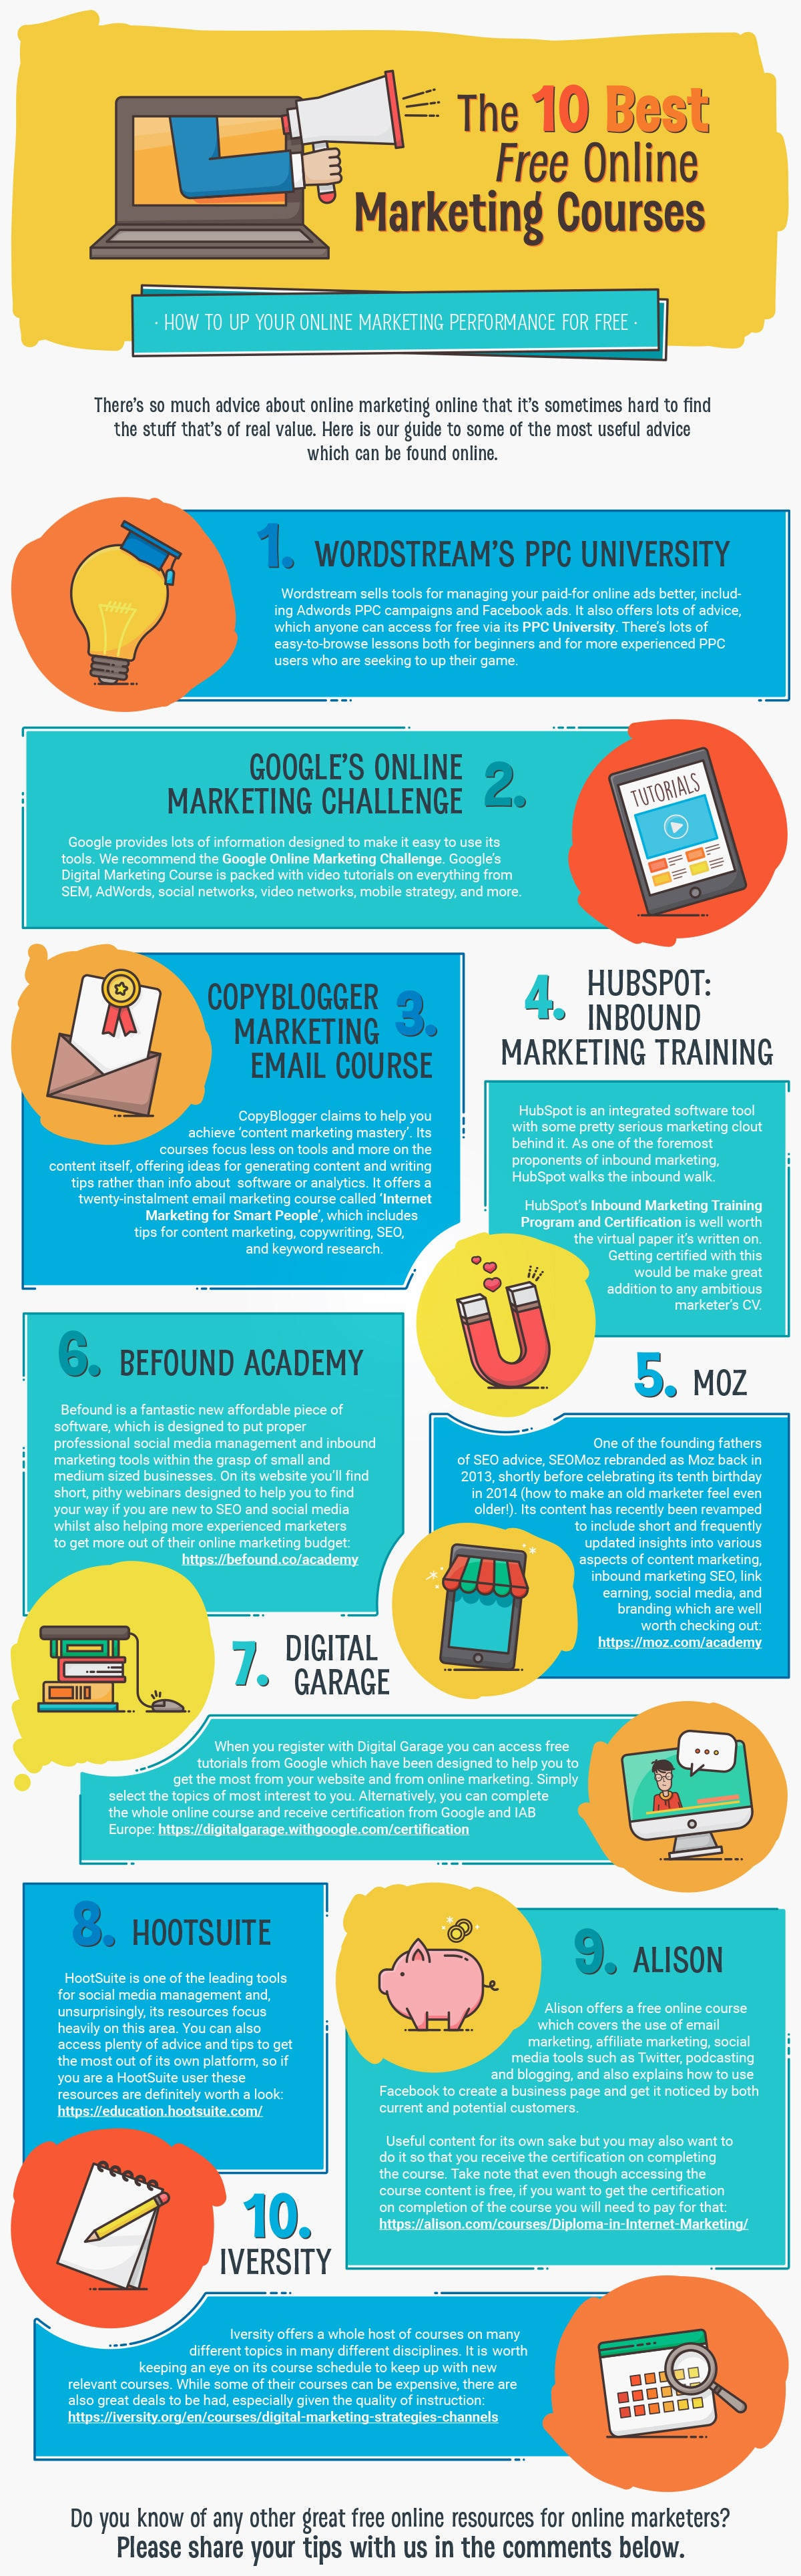 10 Free Online Marketing Courses to Try Today (Infographic)